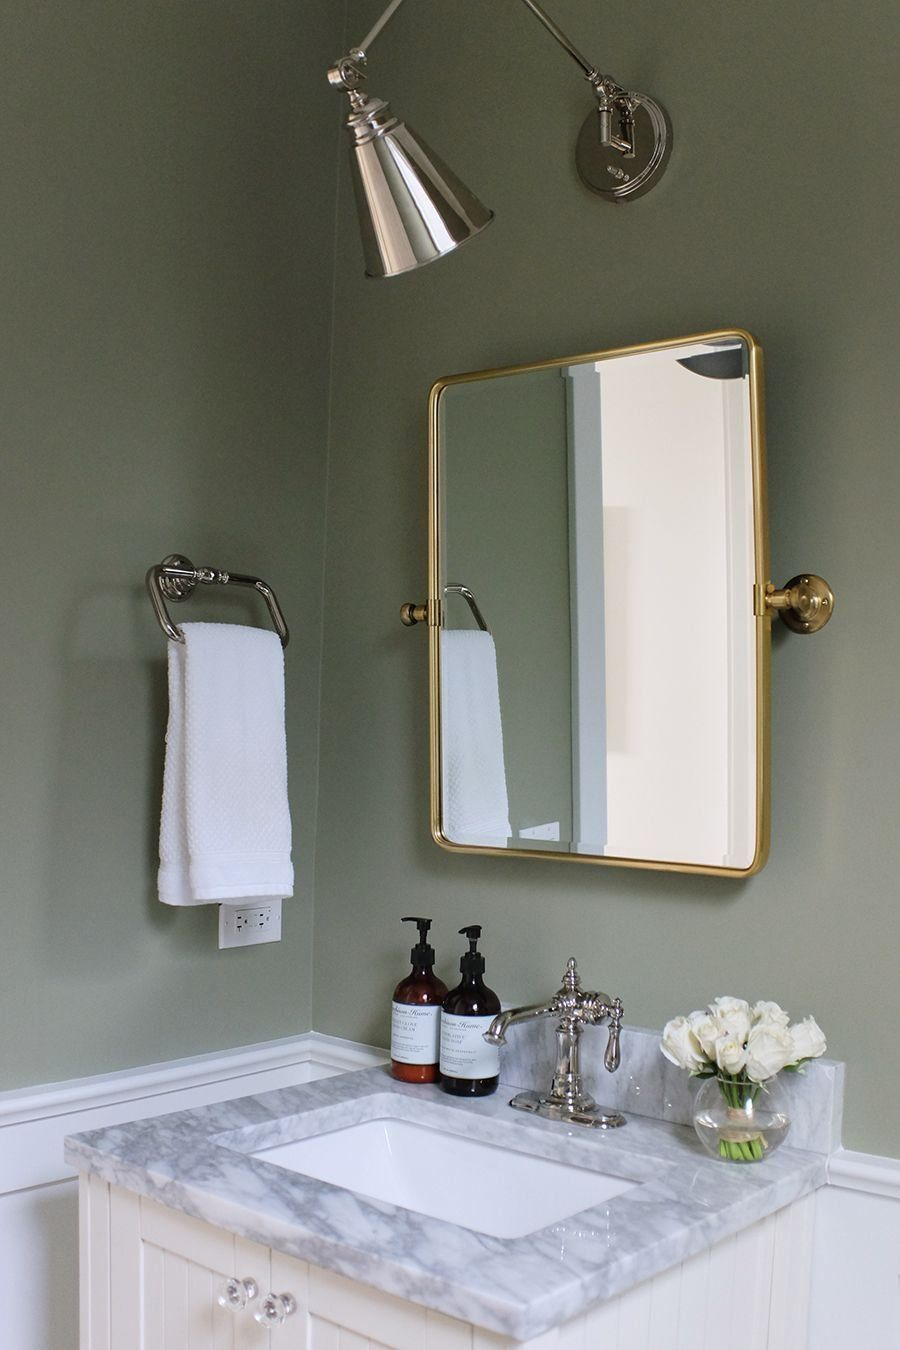 Our Powder Room Painting the Walls Sage Green 1000 in